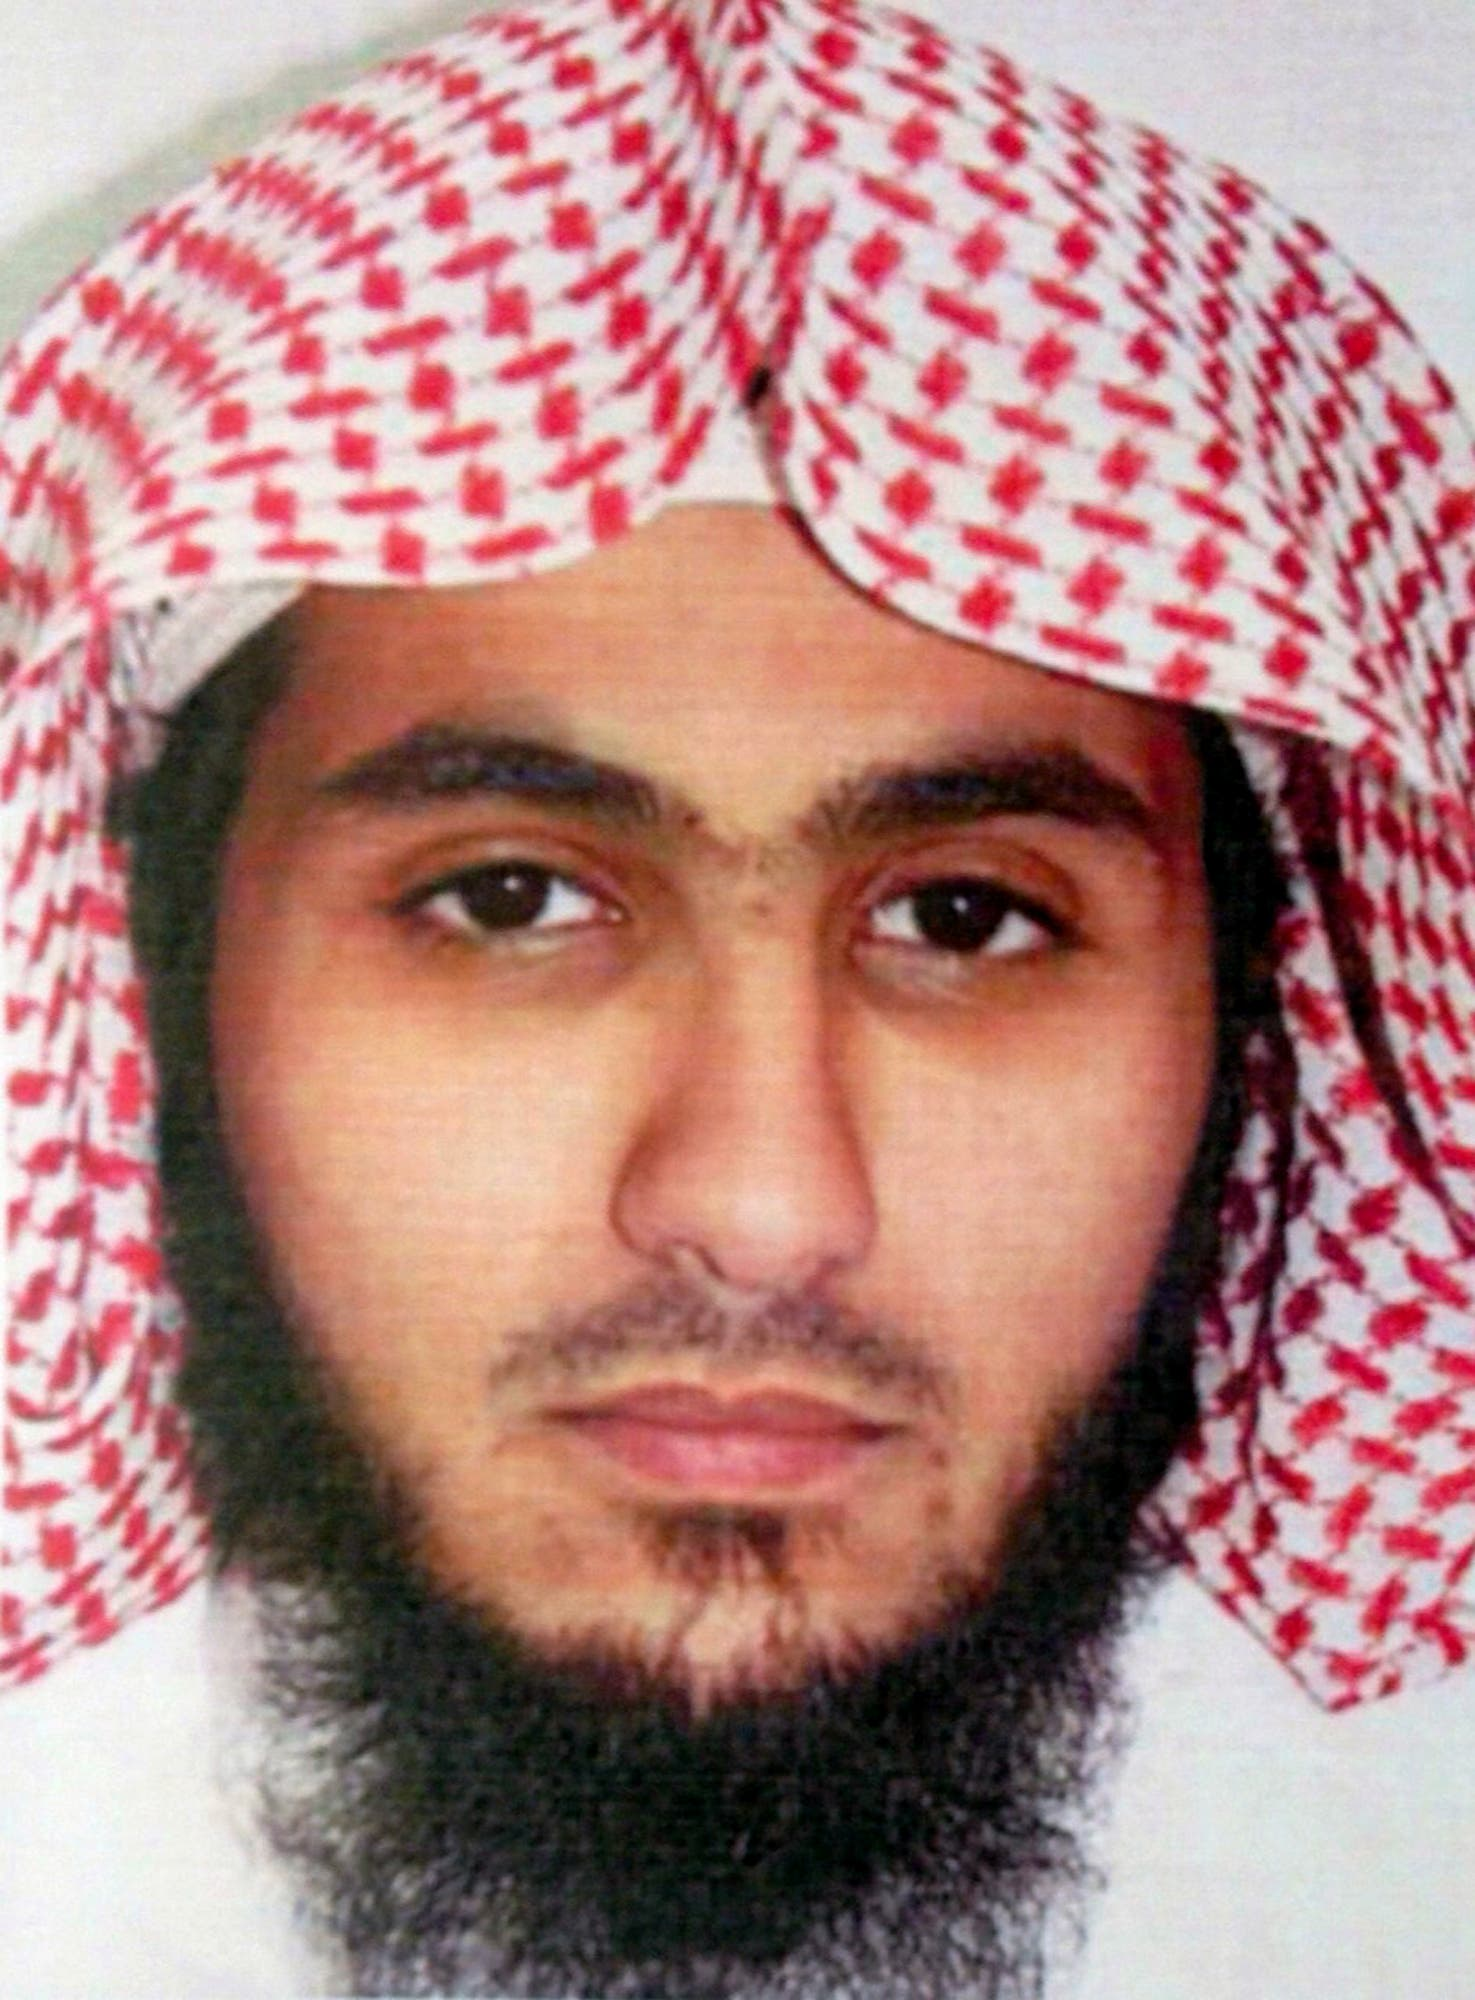 This undated file photo released by Kuwait News Agency, KUNA, on Sunday, June 28, 2015 shows Fahad Suleiman Abdulmohsen al-Gabbaa, who Kuwaiti authorities on Sunday identified al-Gabbaa as a Saudi citizen who flew into the Gulf nation just hours before he blew himself in an attack on one of Kuwait's oldest Shiite mosques during midday Friday prayers. Gulf officials said Monday, June 29, 2015 that he flew into the country after transiting through nearby Bahrain and had no background suggesting he planned to carry out a terrorist attack. (KUNA via AP, File)